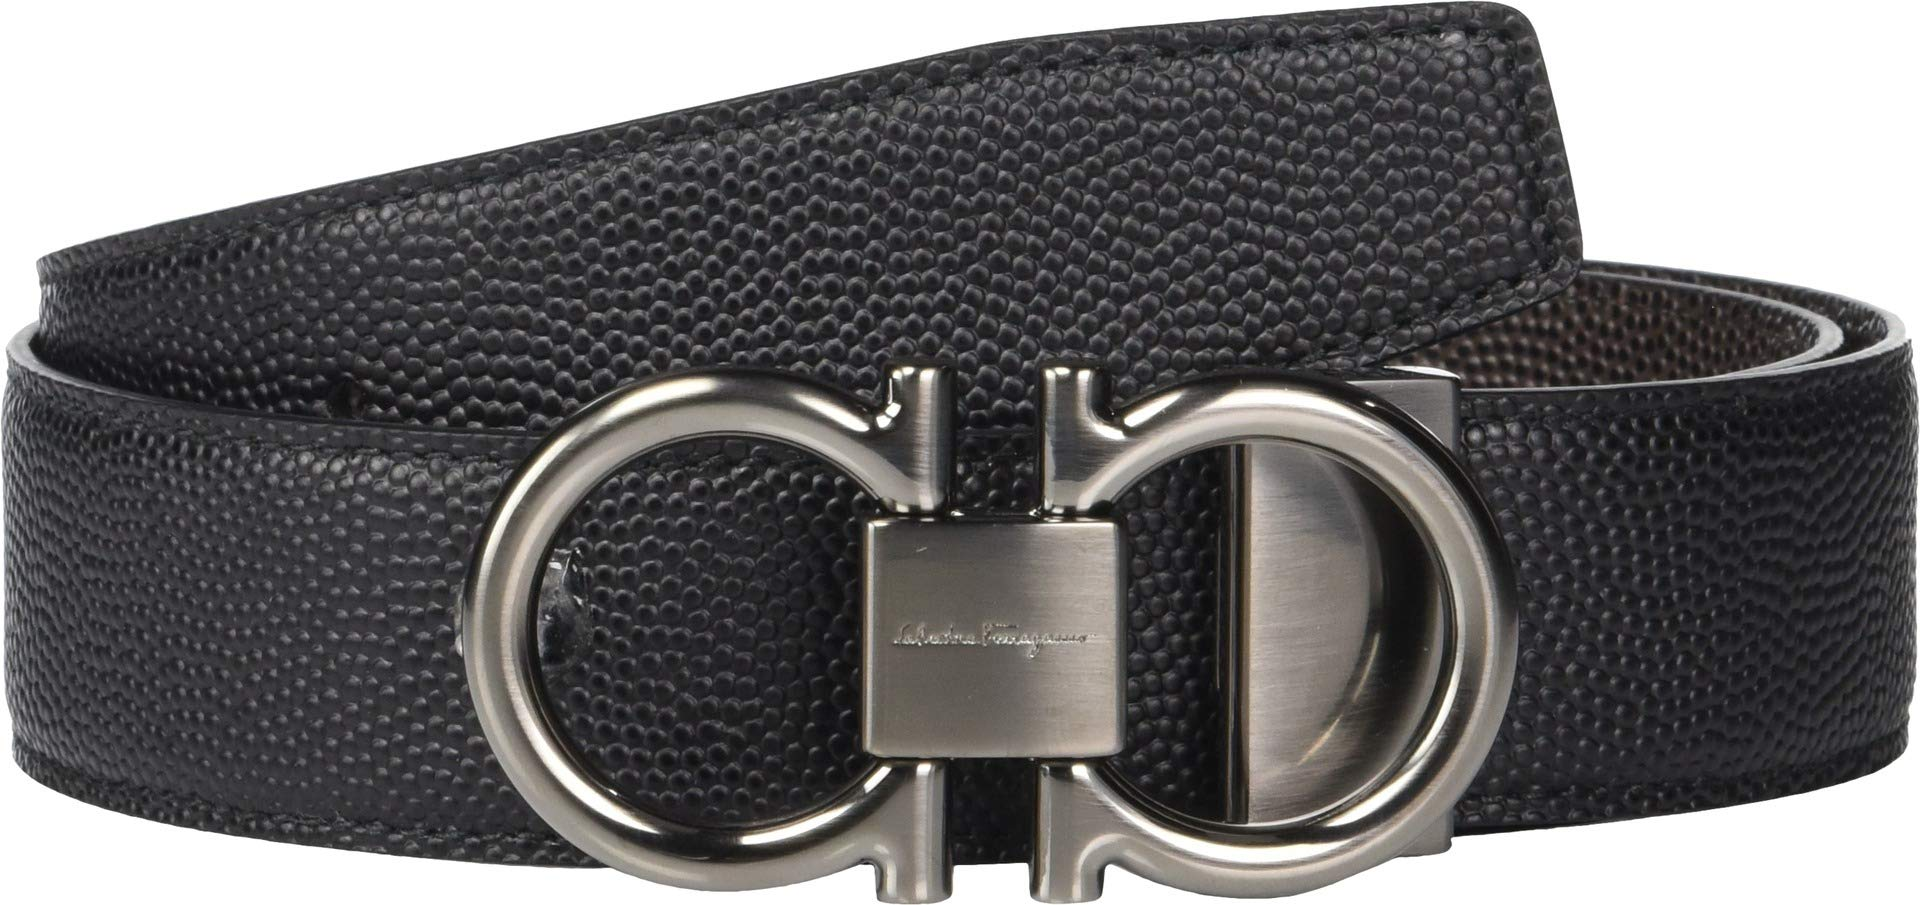 Salvatore Ferragamo Men's Double Gancio Reversible Belt, Black/Brown, 36